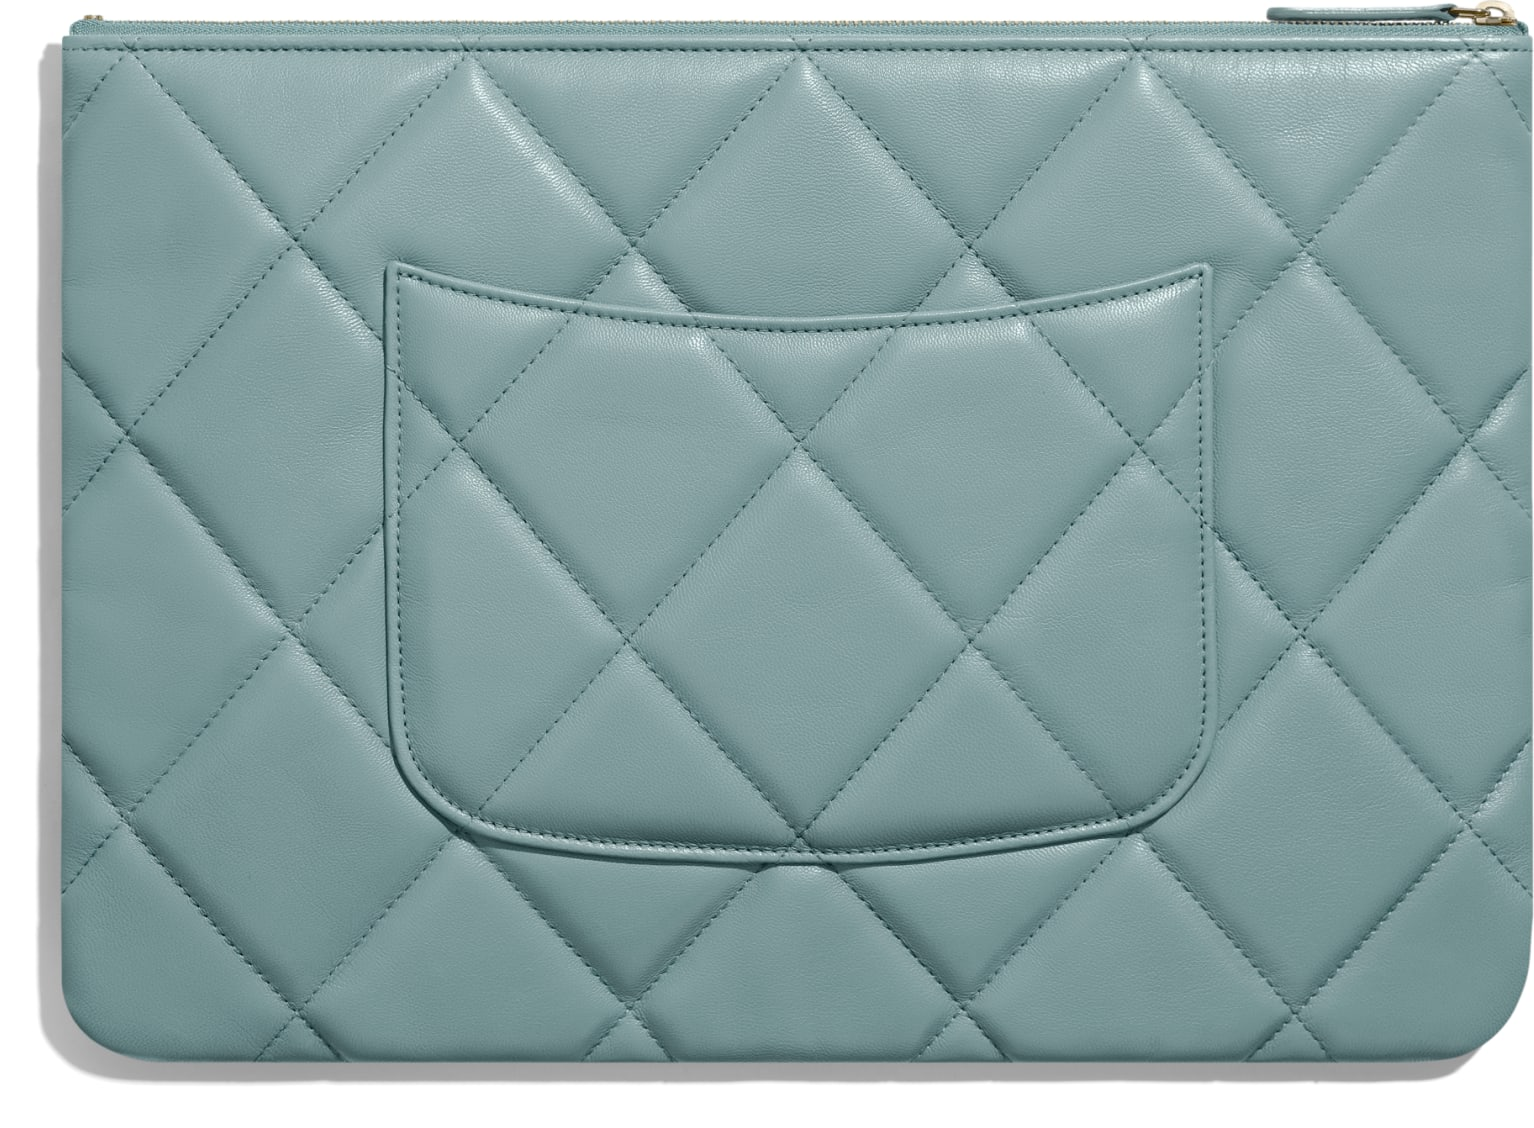 CHANEL 19 Large Pouch